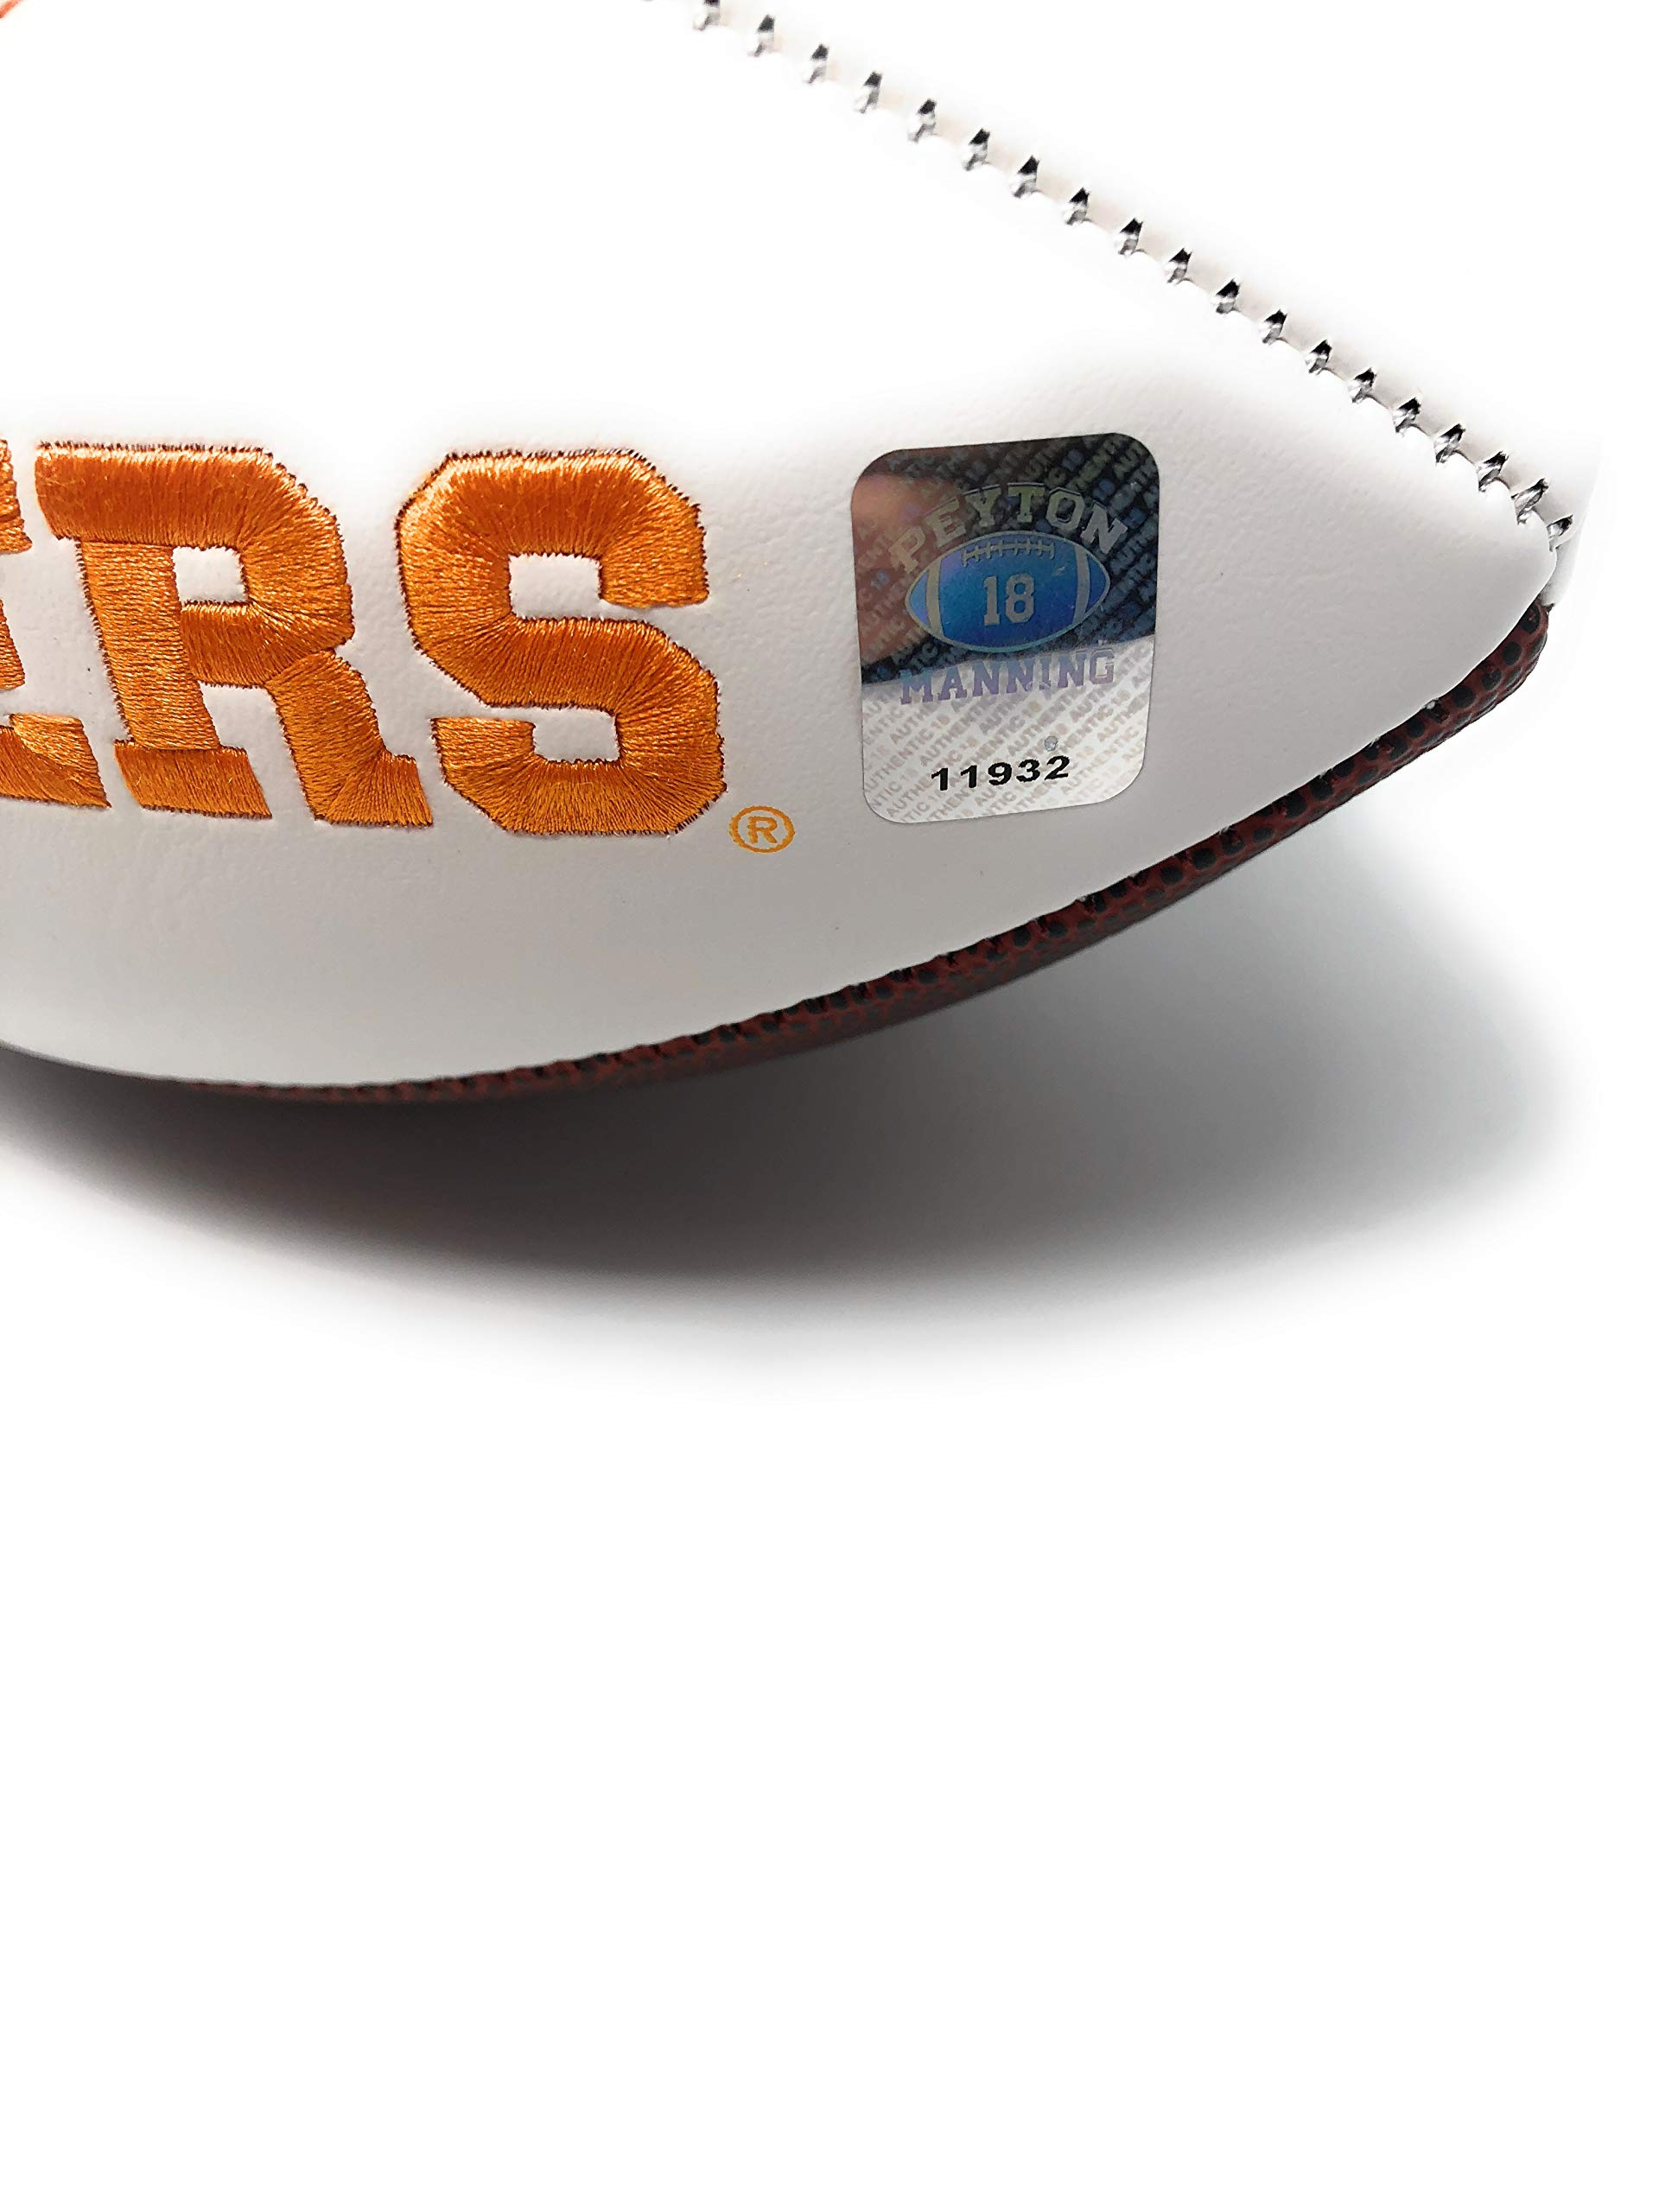 Peyton Manning Tennessee Volunteers Signed Autograph Embroidered Logo Football Manning Player Hologram